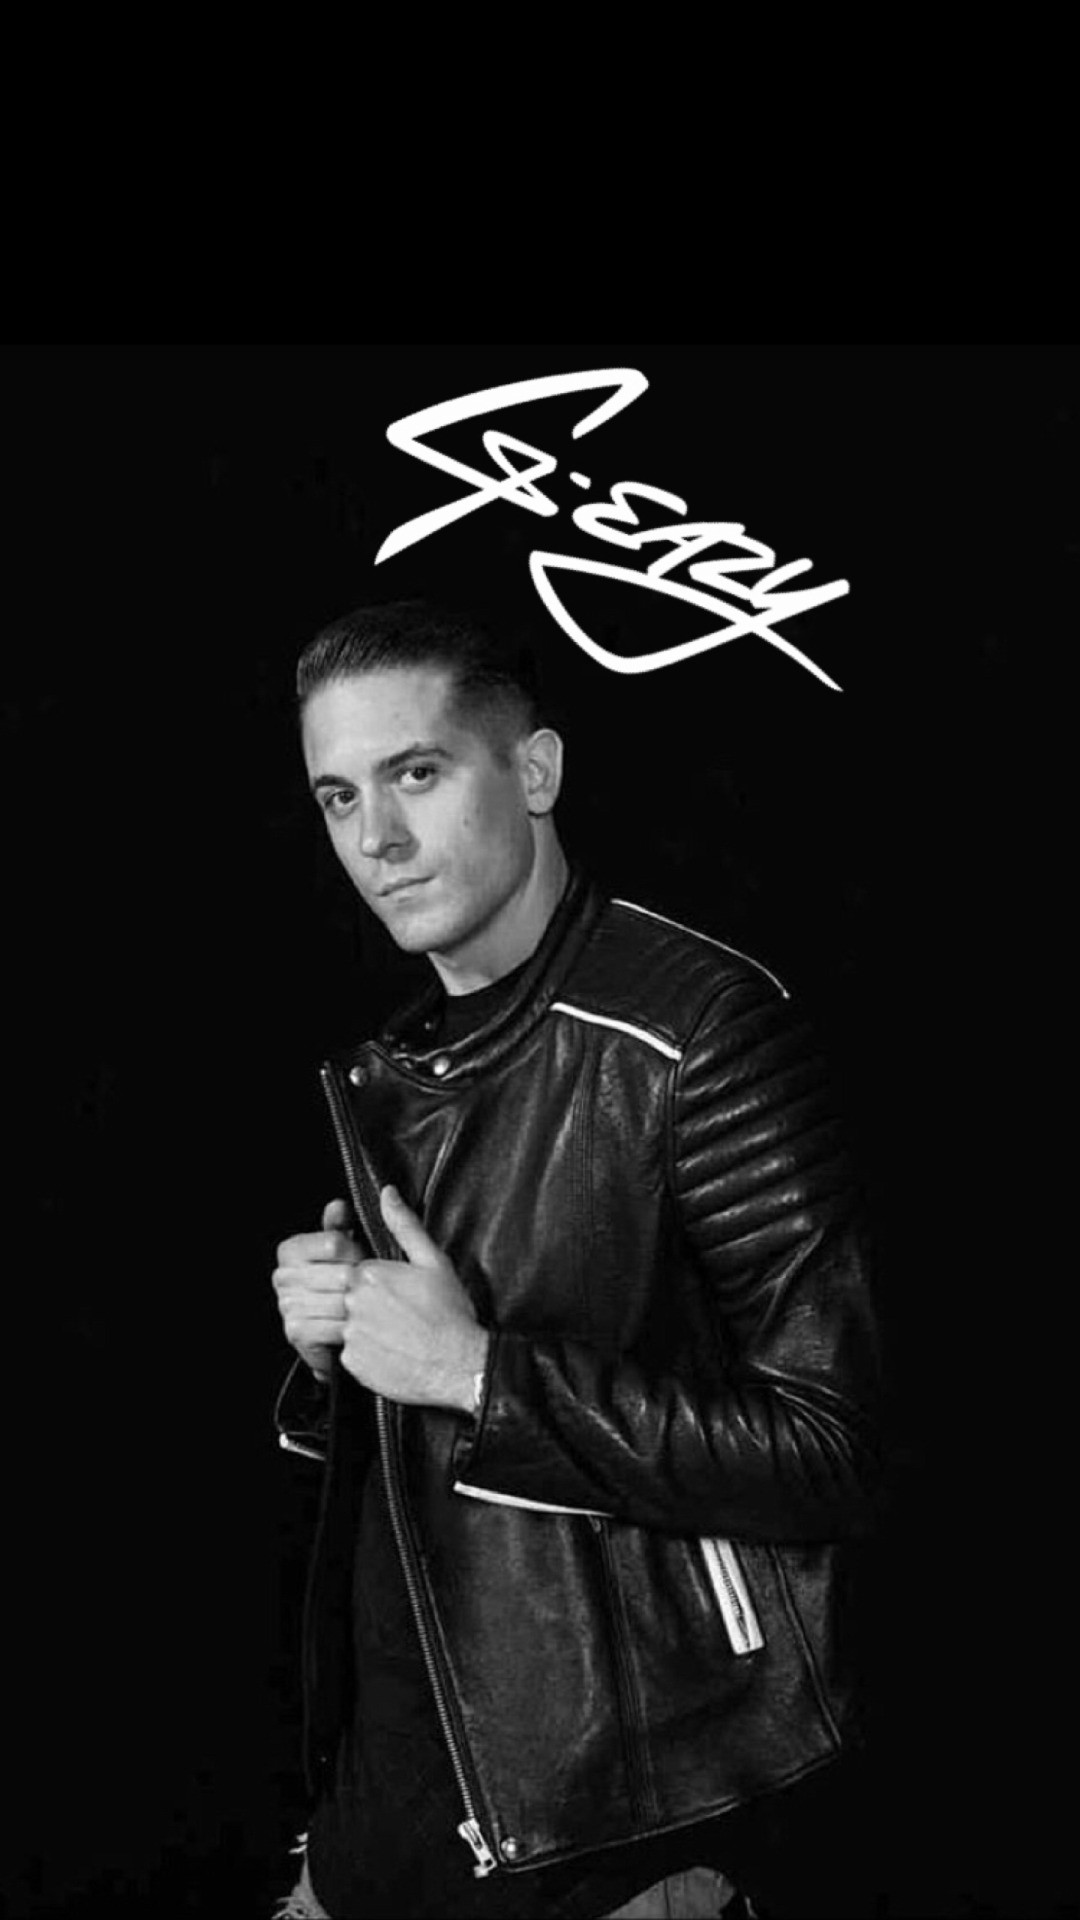 … G Eazy High Quality Wallpapers …